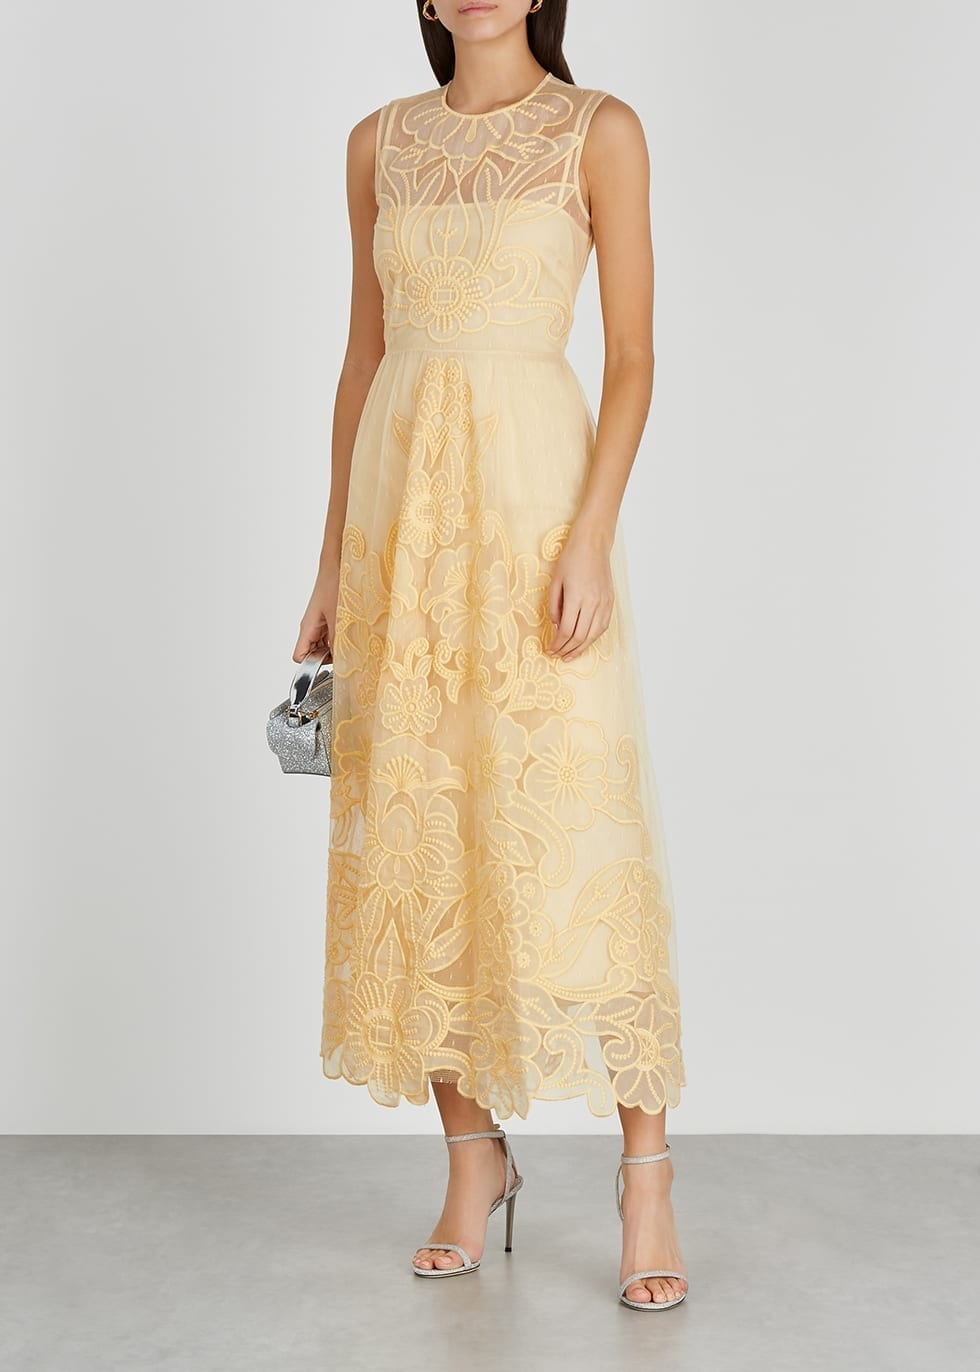 RED VALENTINO Yellow Floral-embroidered Point D'esprit Dress